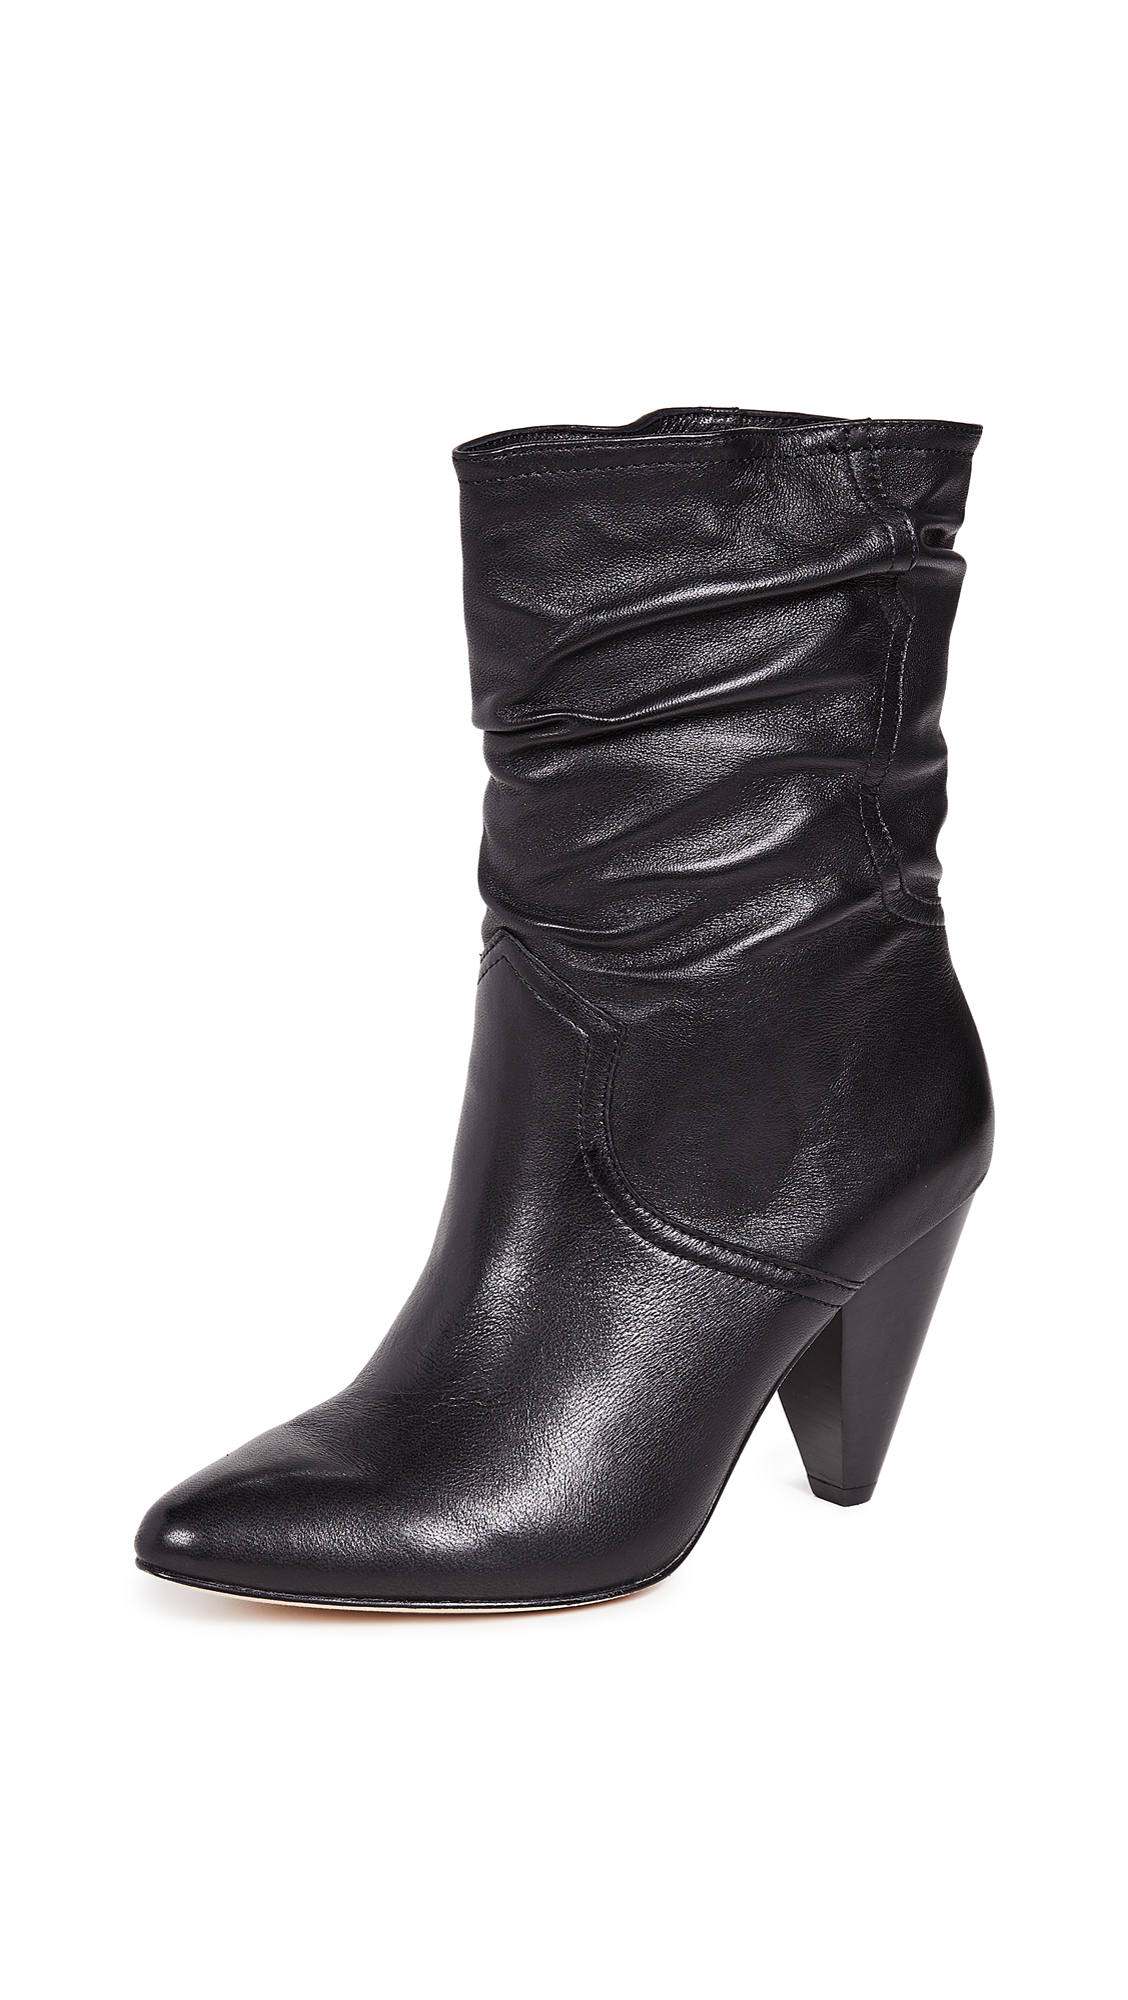 Gabbissy Slouchy Leather Mid-Calf Boots, Black